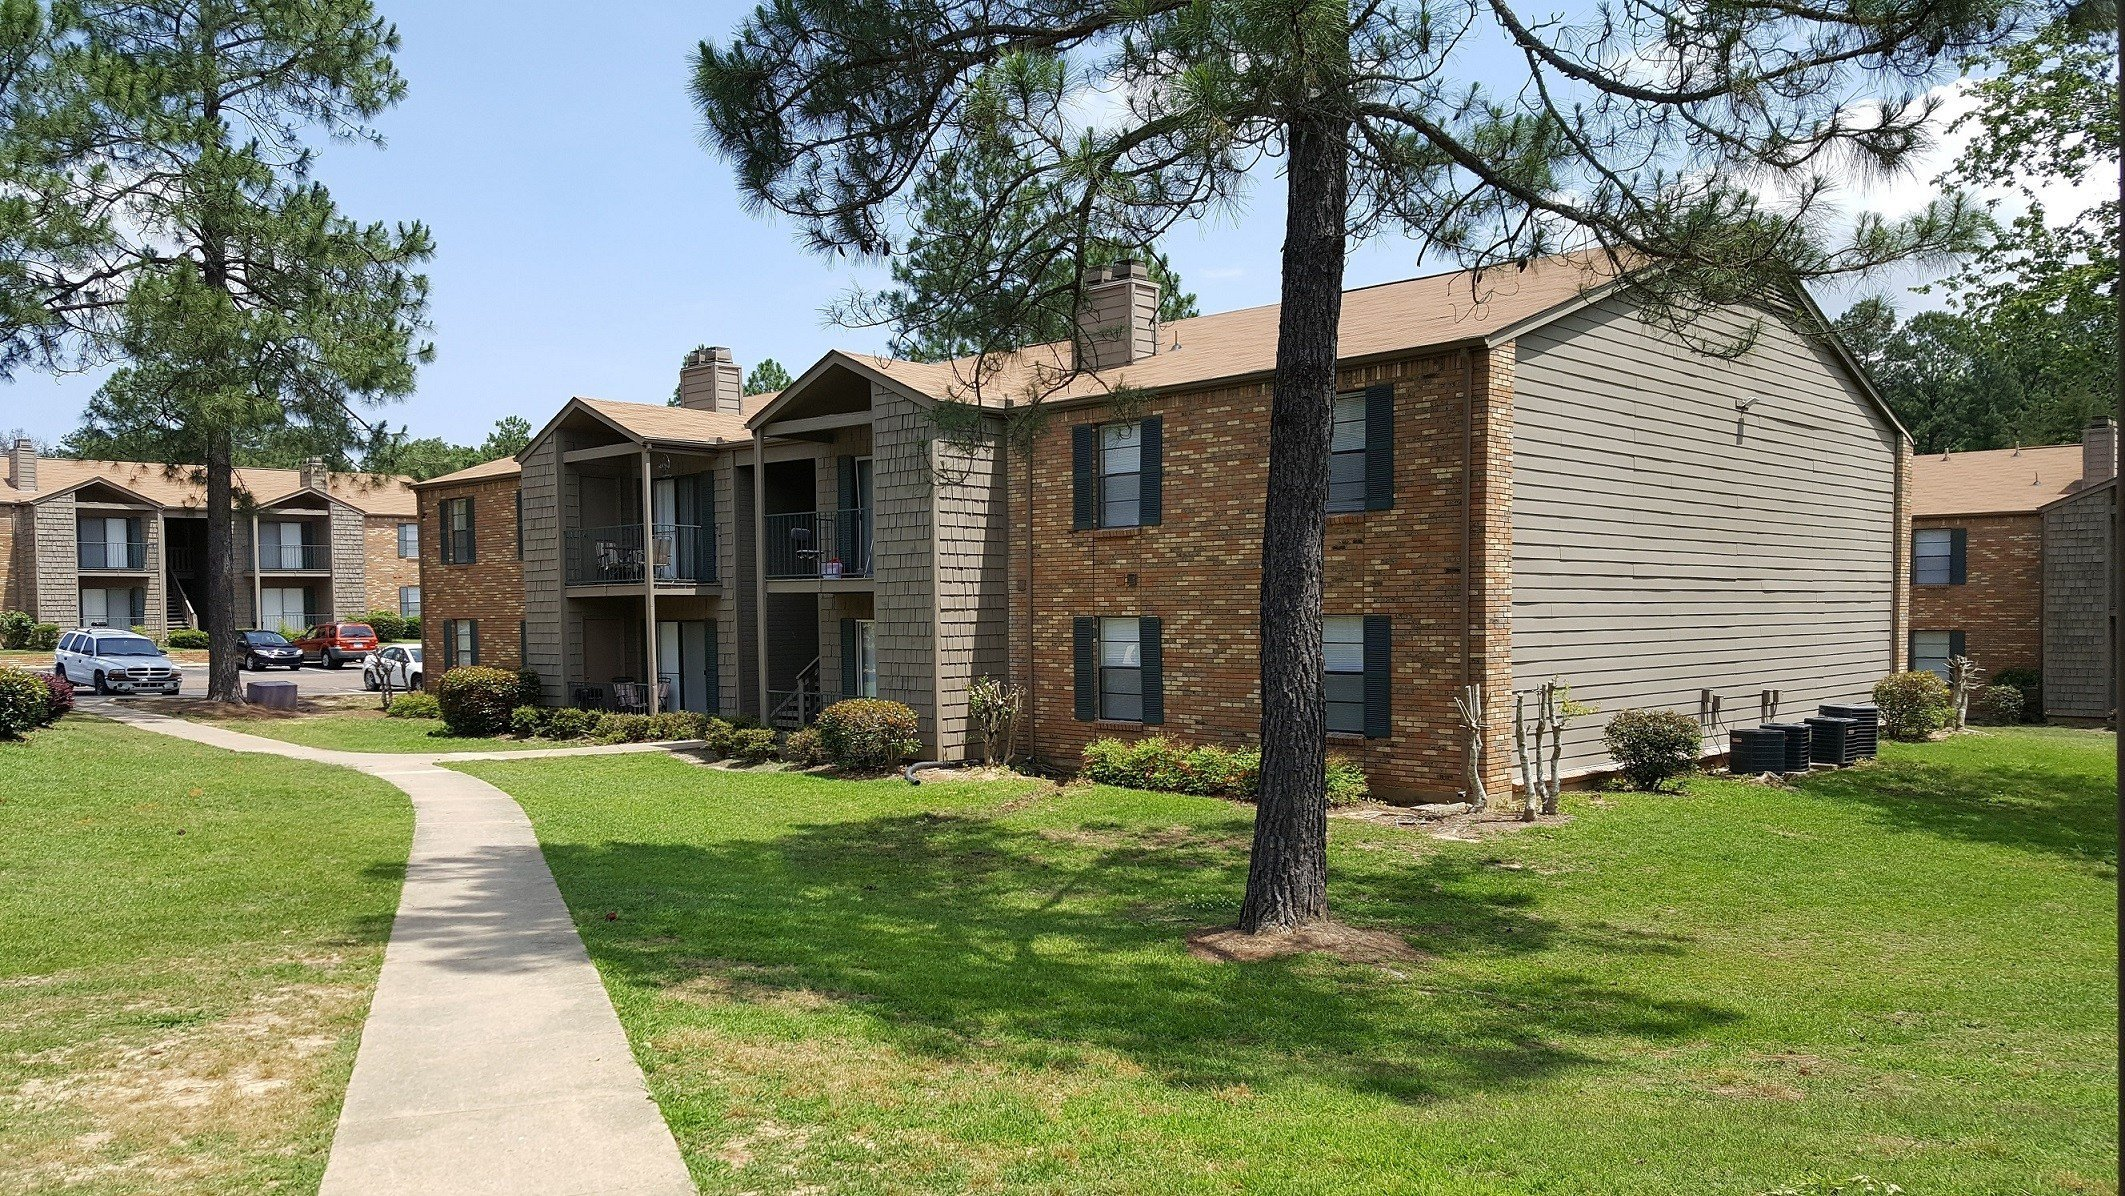 Best Apartments In Jackson Ms Woodridge Apartments For Rent With Pictures